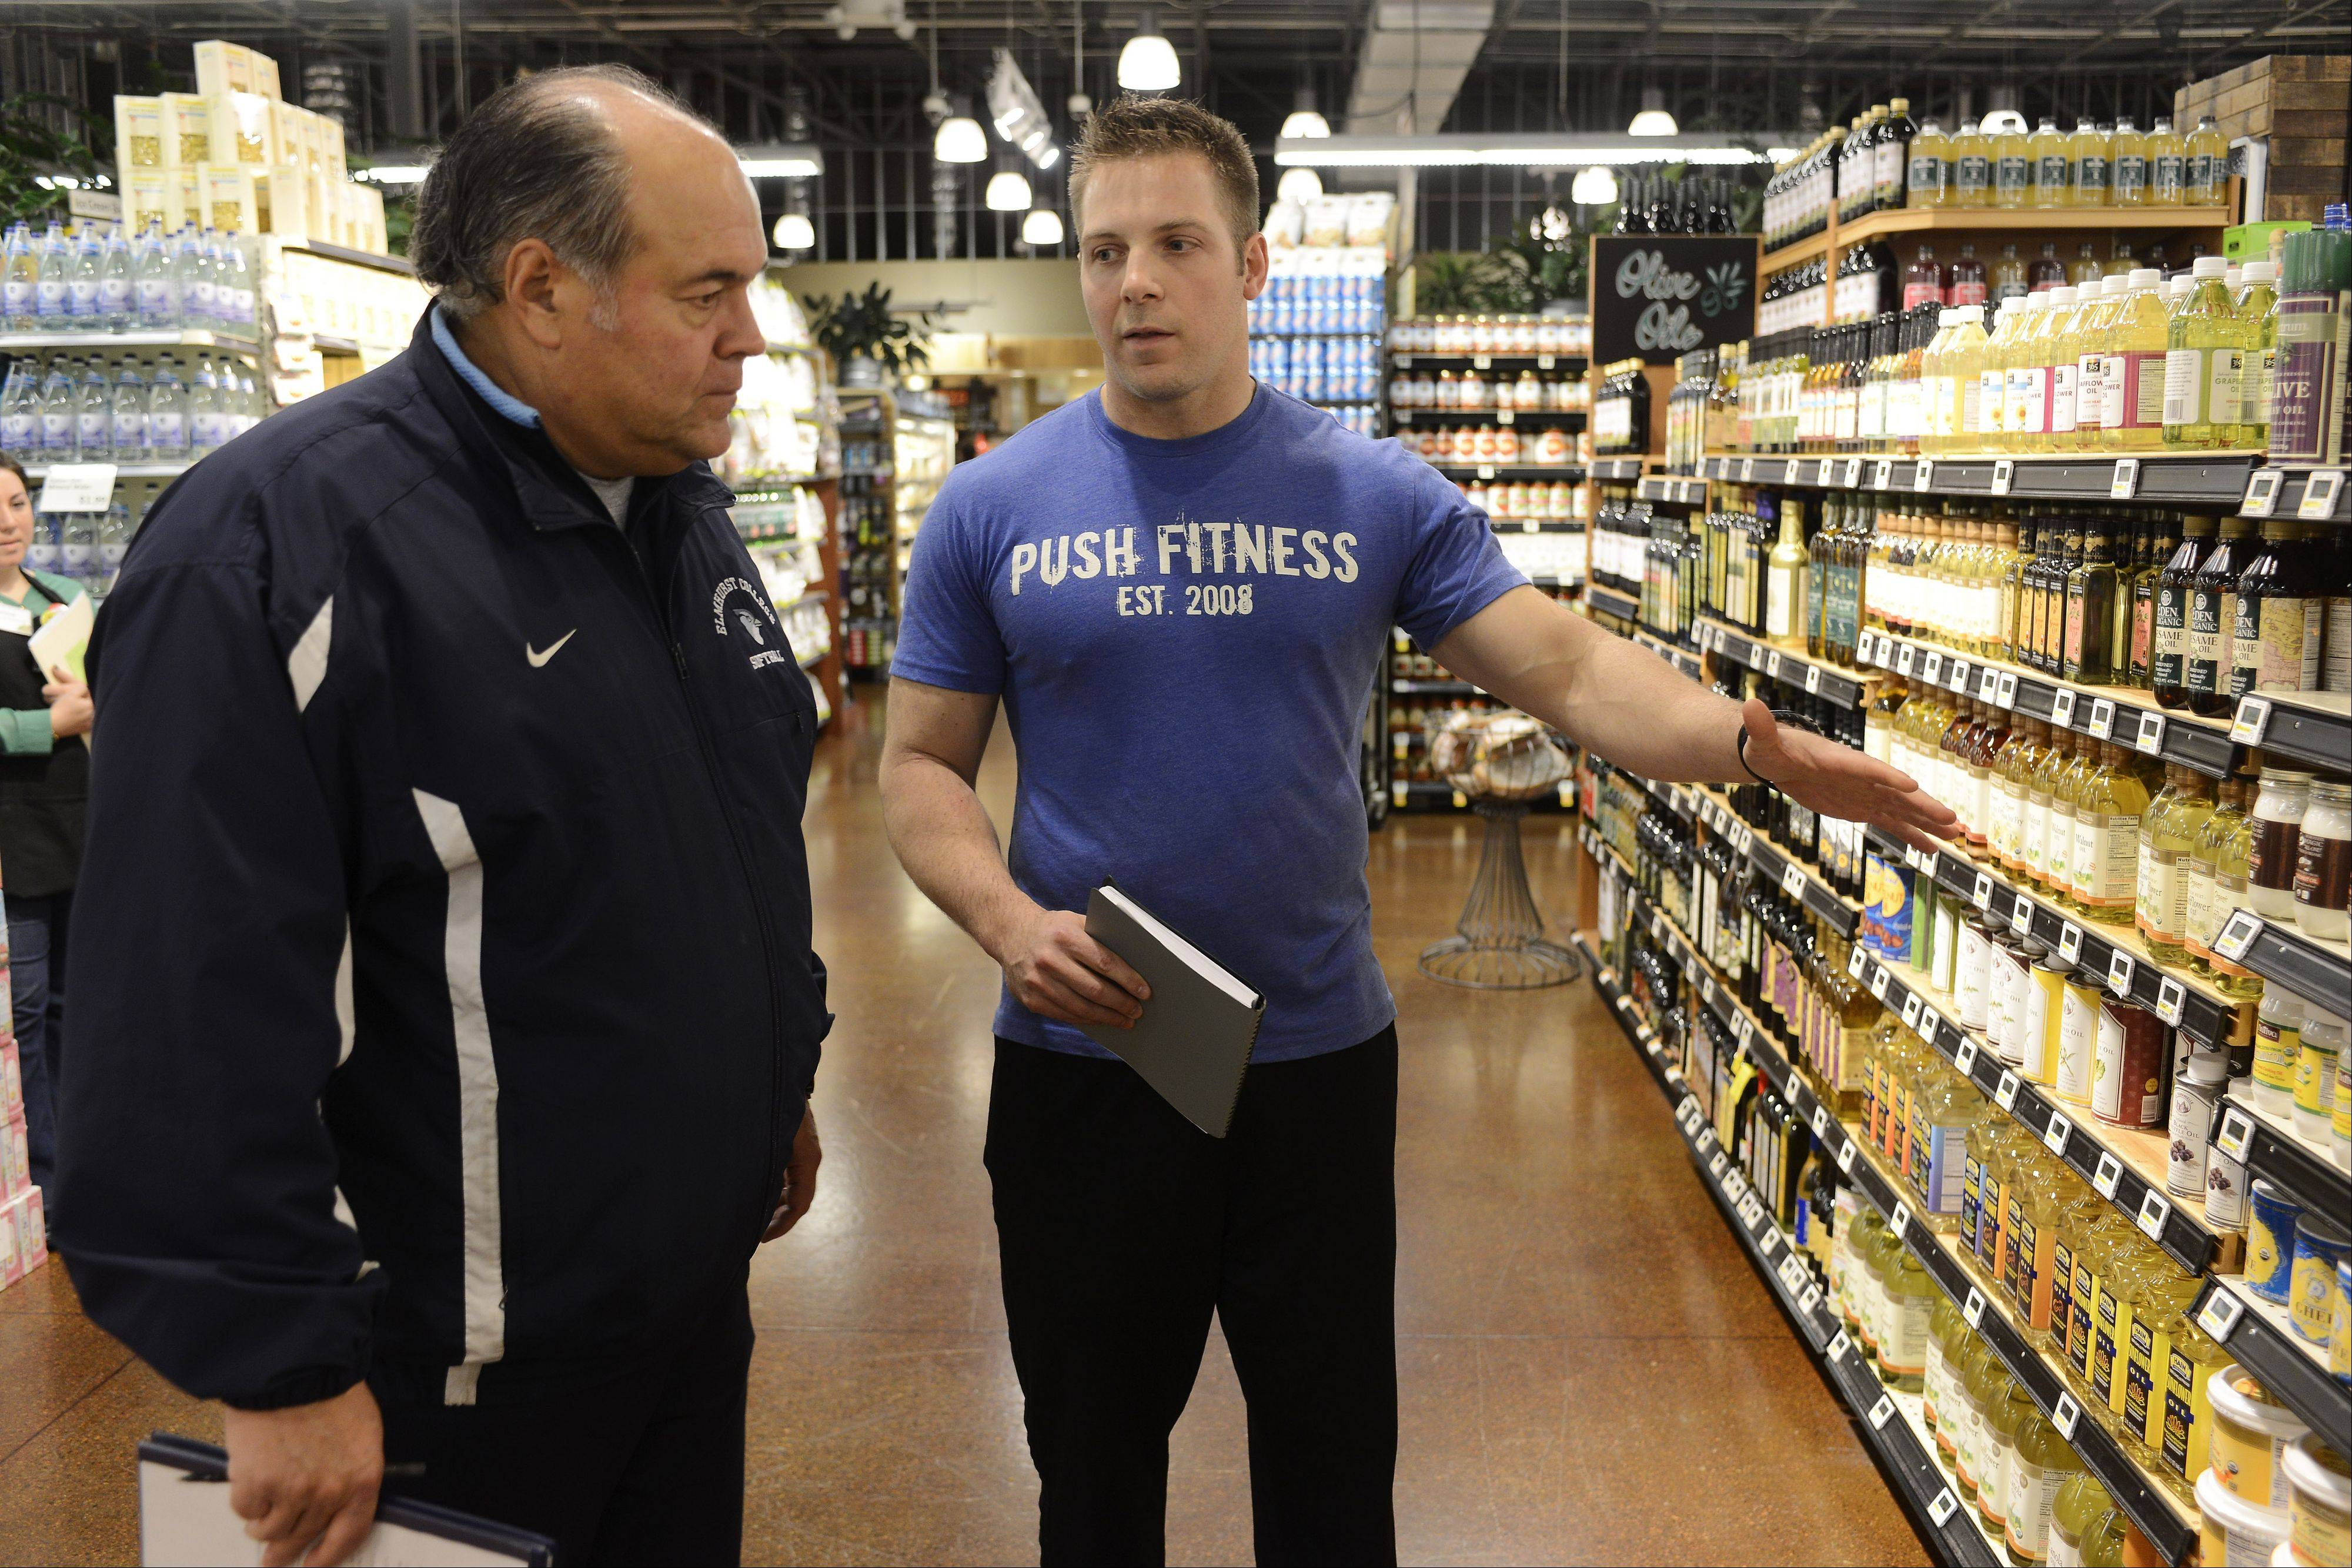 Push Fitness trainer Brodie Medlock points out healthy food options to Mike Paulo at the Whole Foods store in Schaumburg.